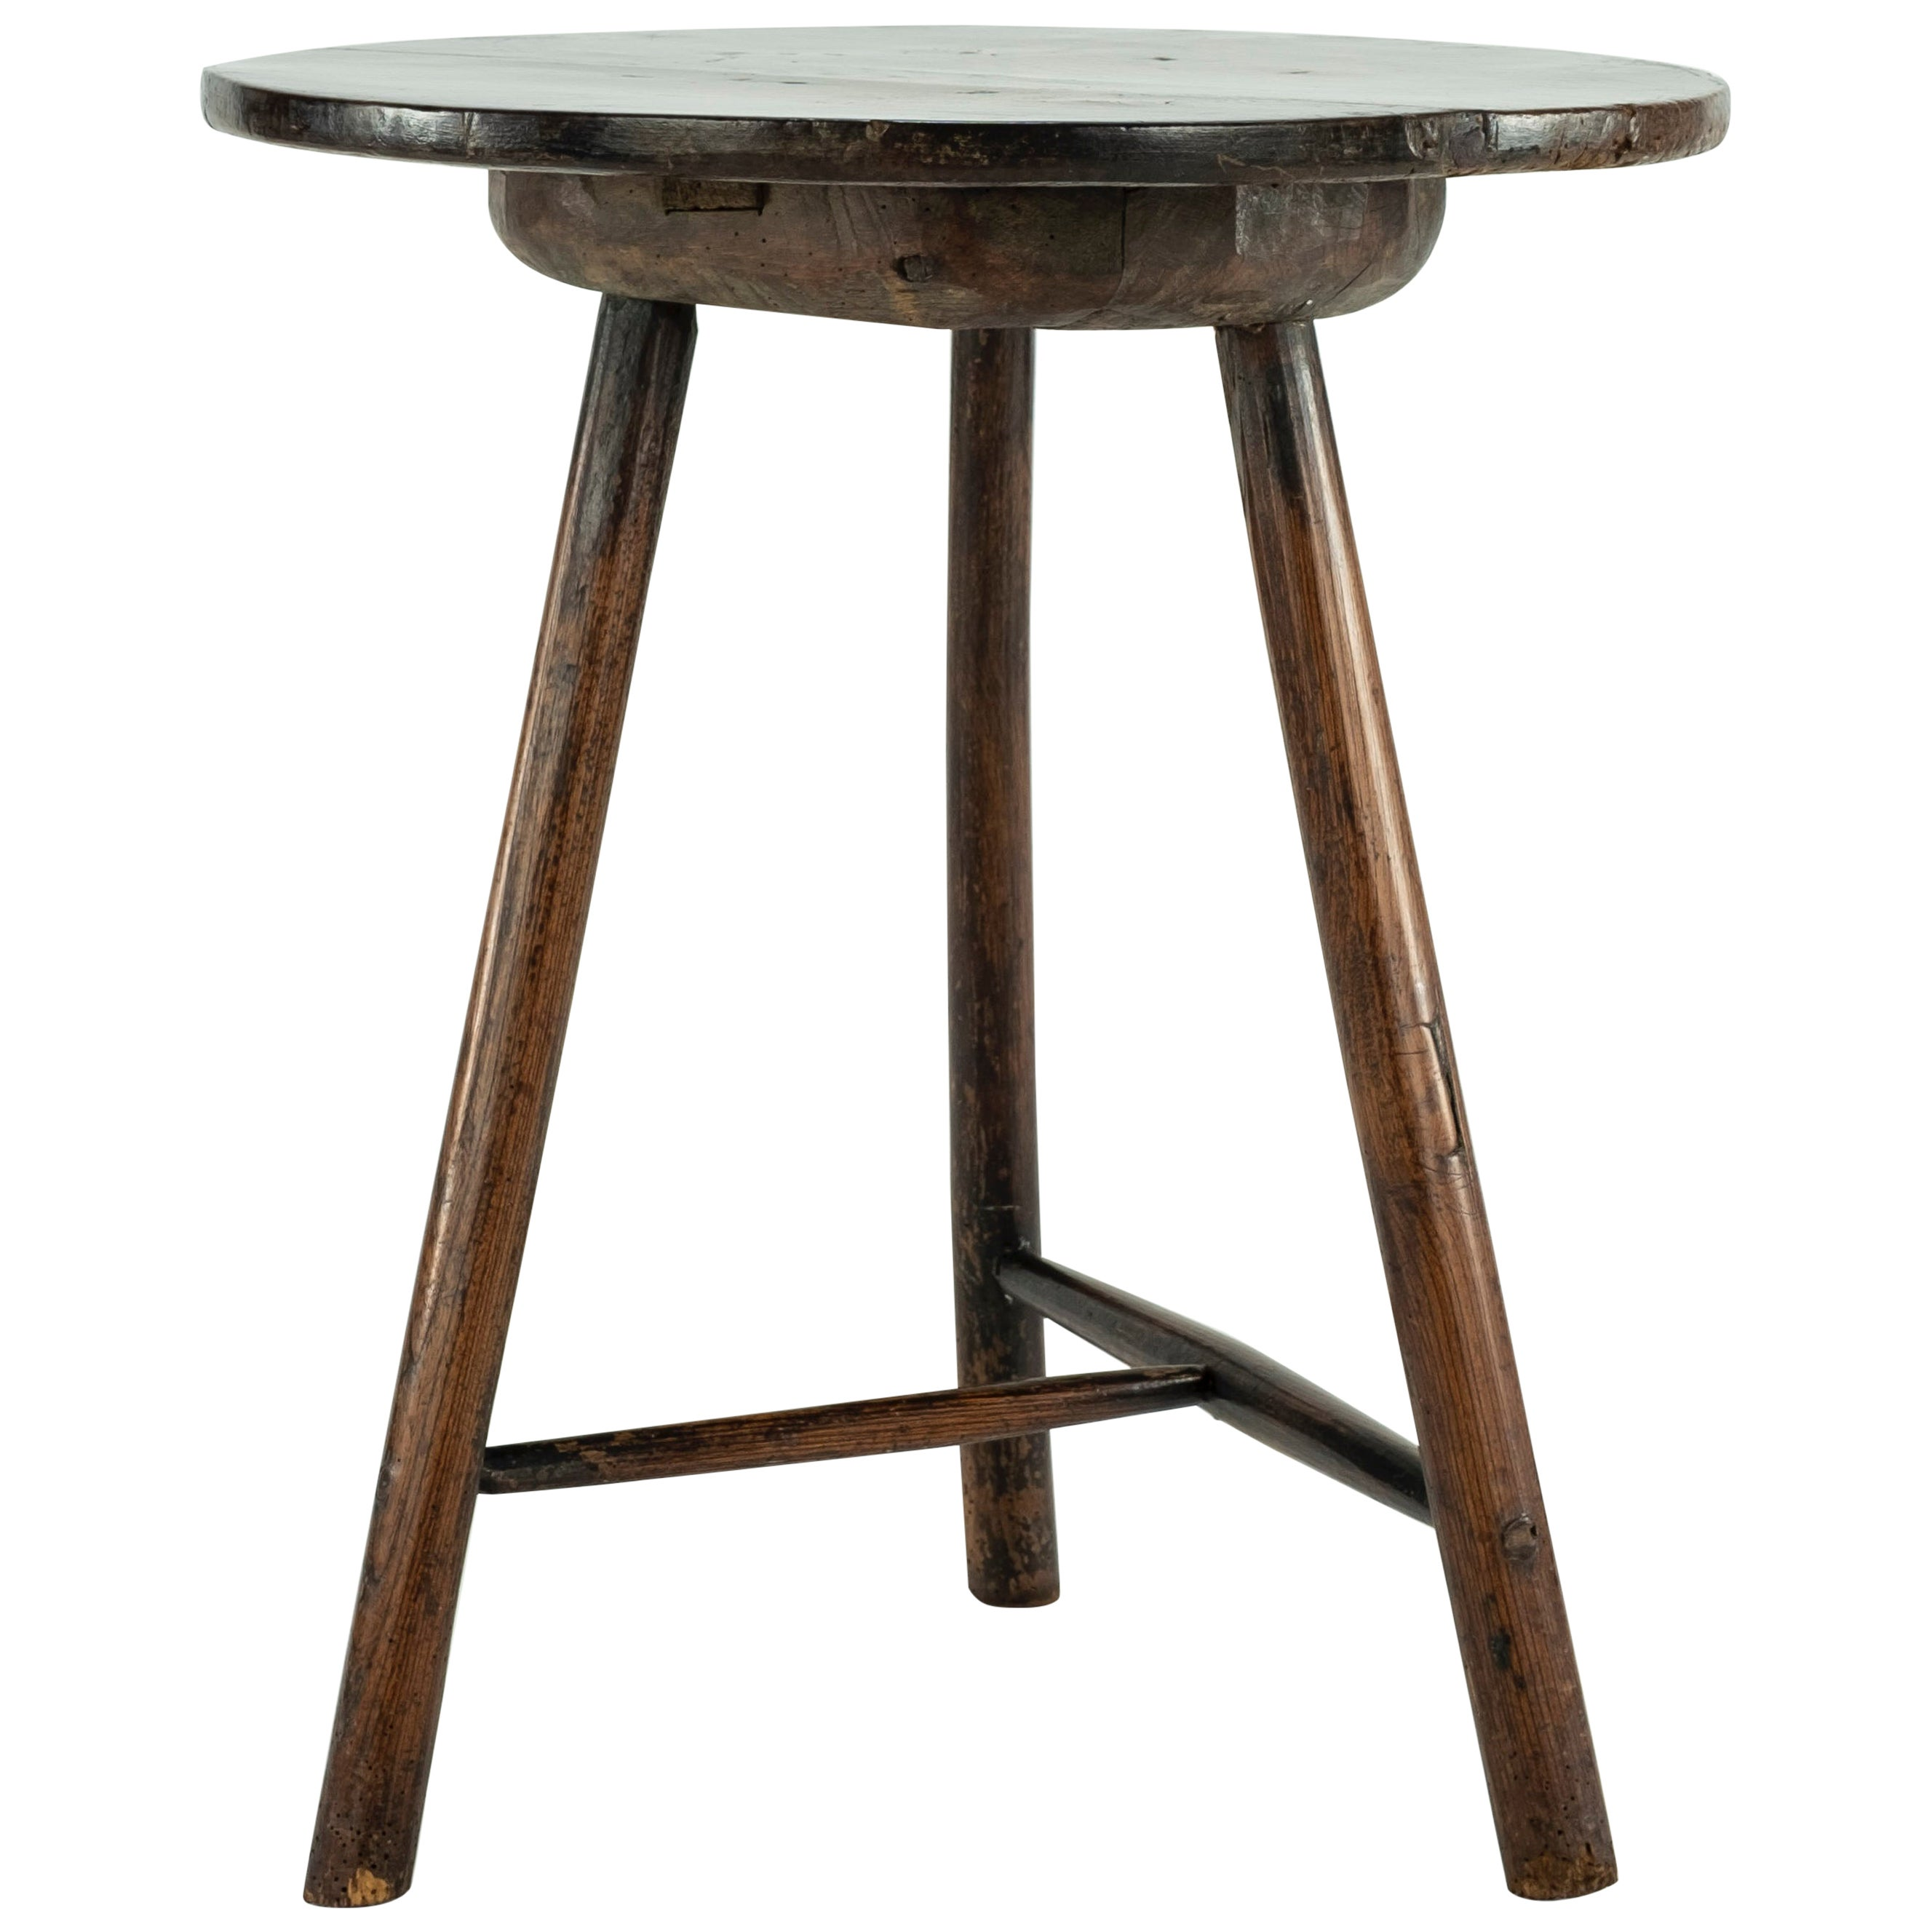 19th Century Rustic Elm Cricket Table